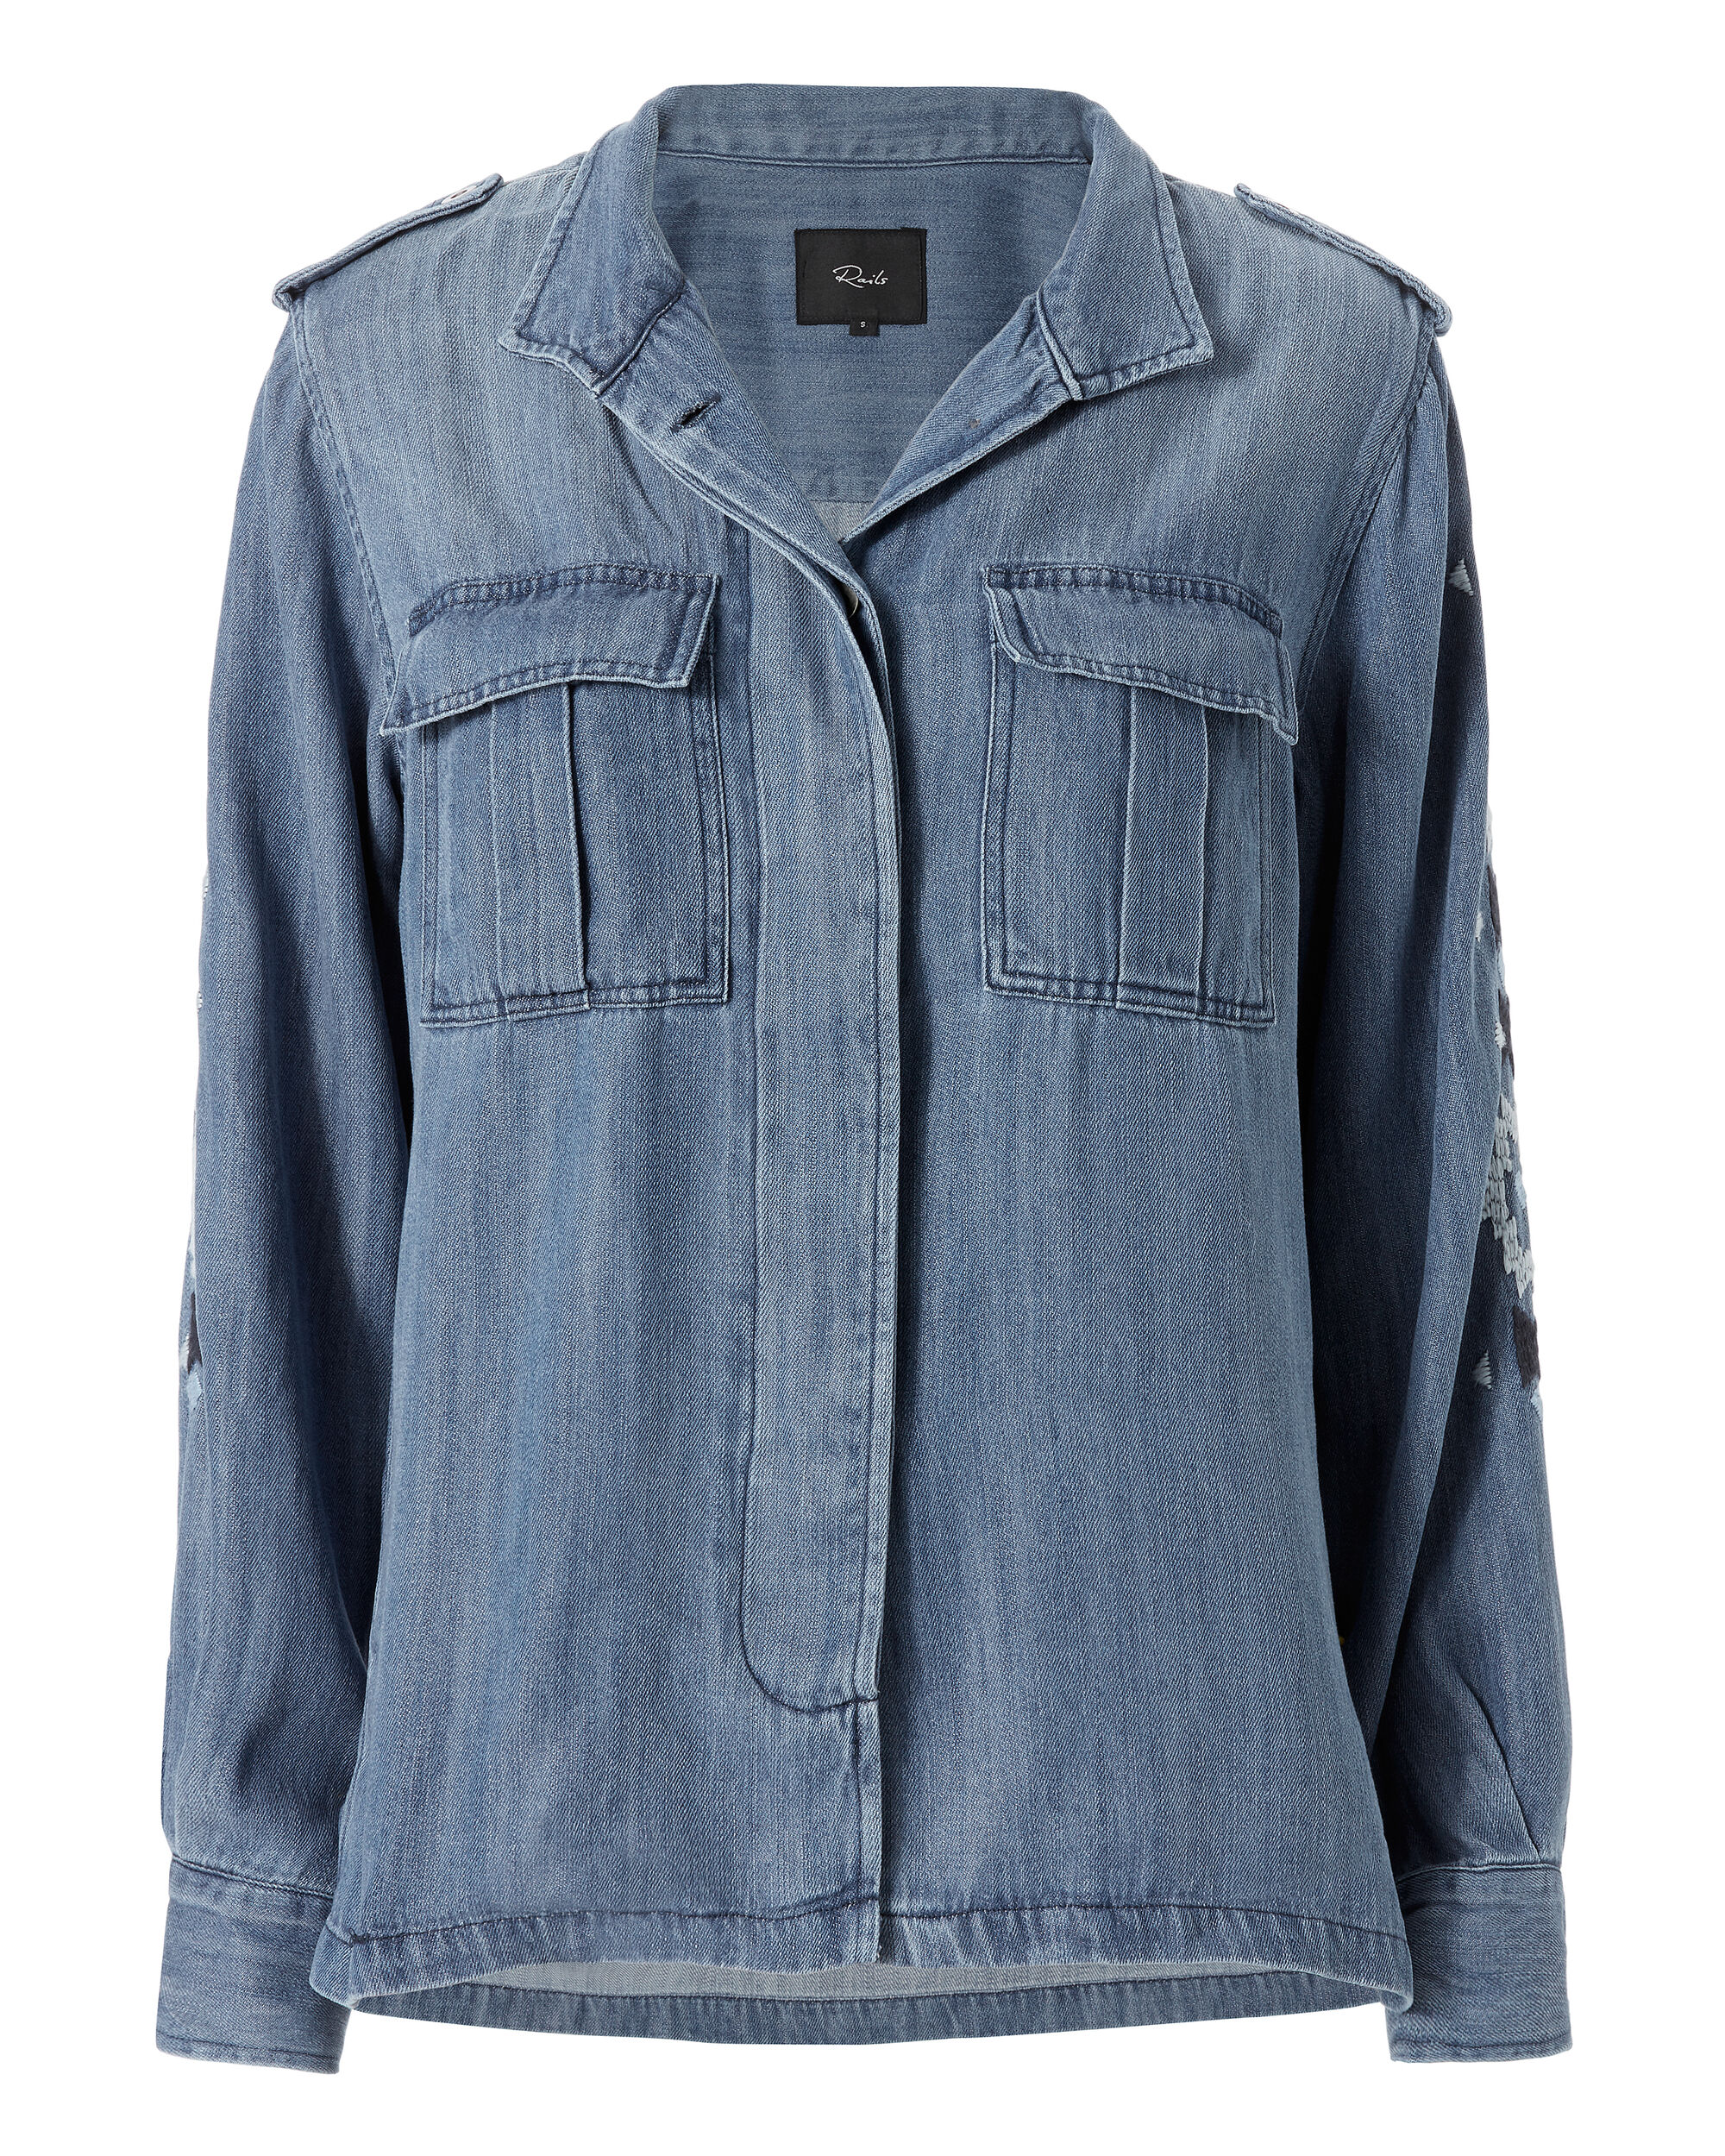 Smith Denim Jacket, DENIM, hi-res